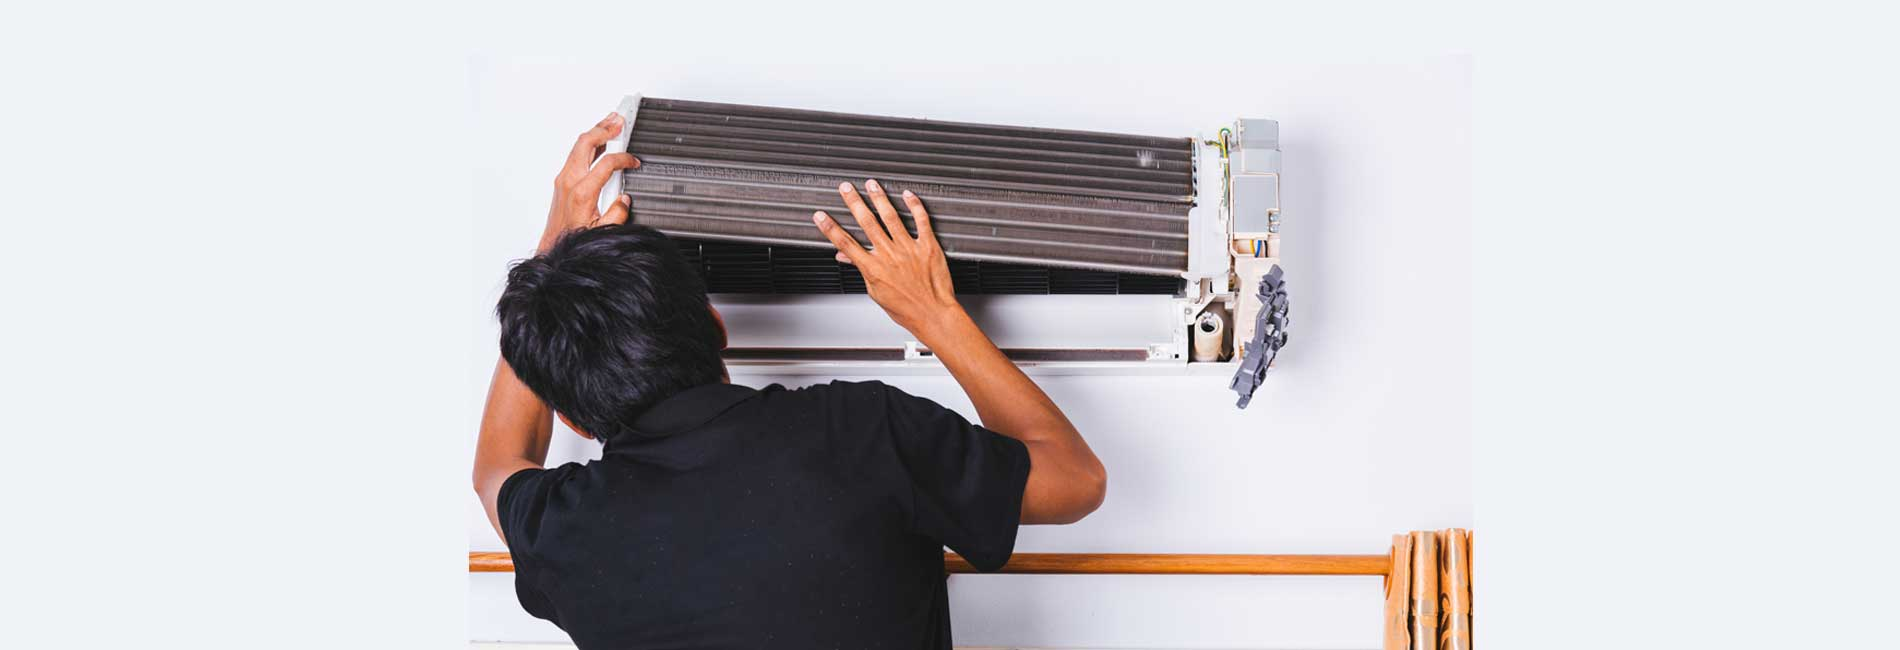 Panasonic AC Repair in Choolaimedu